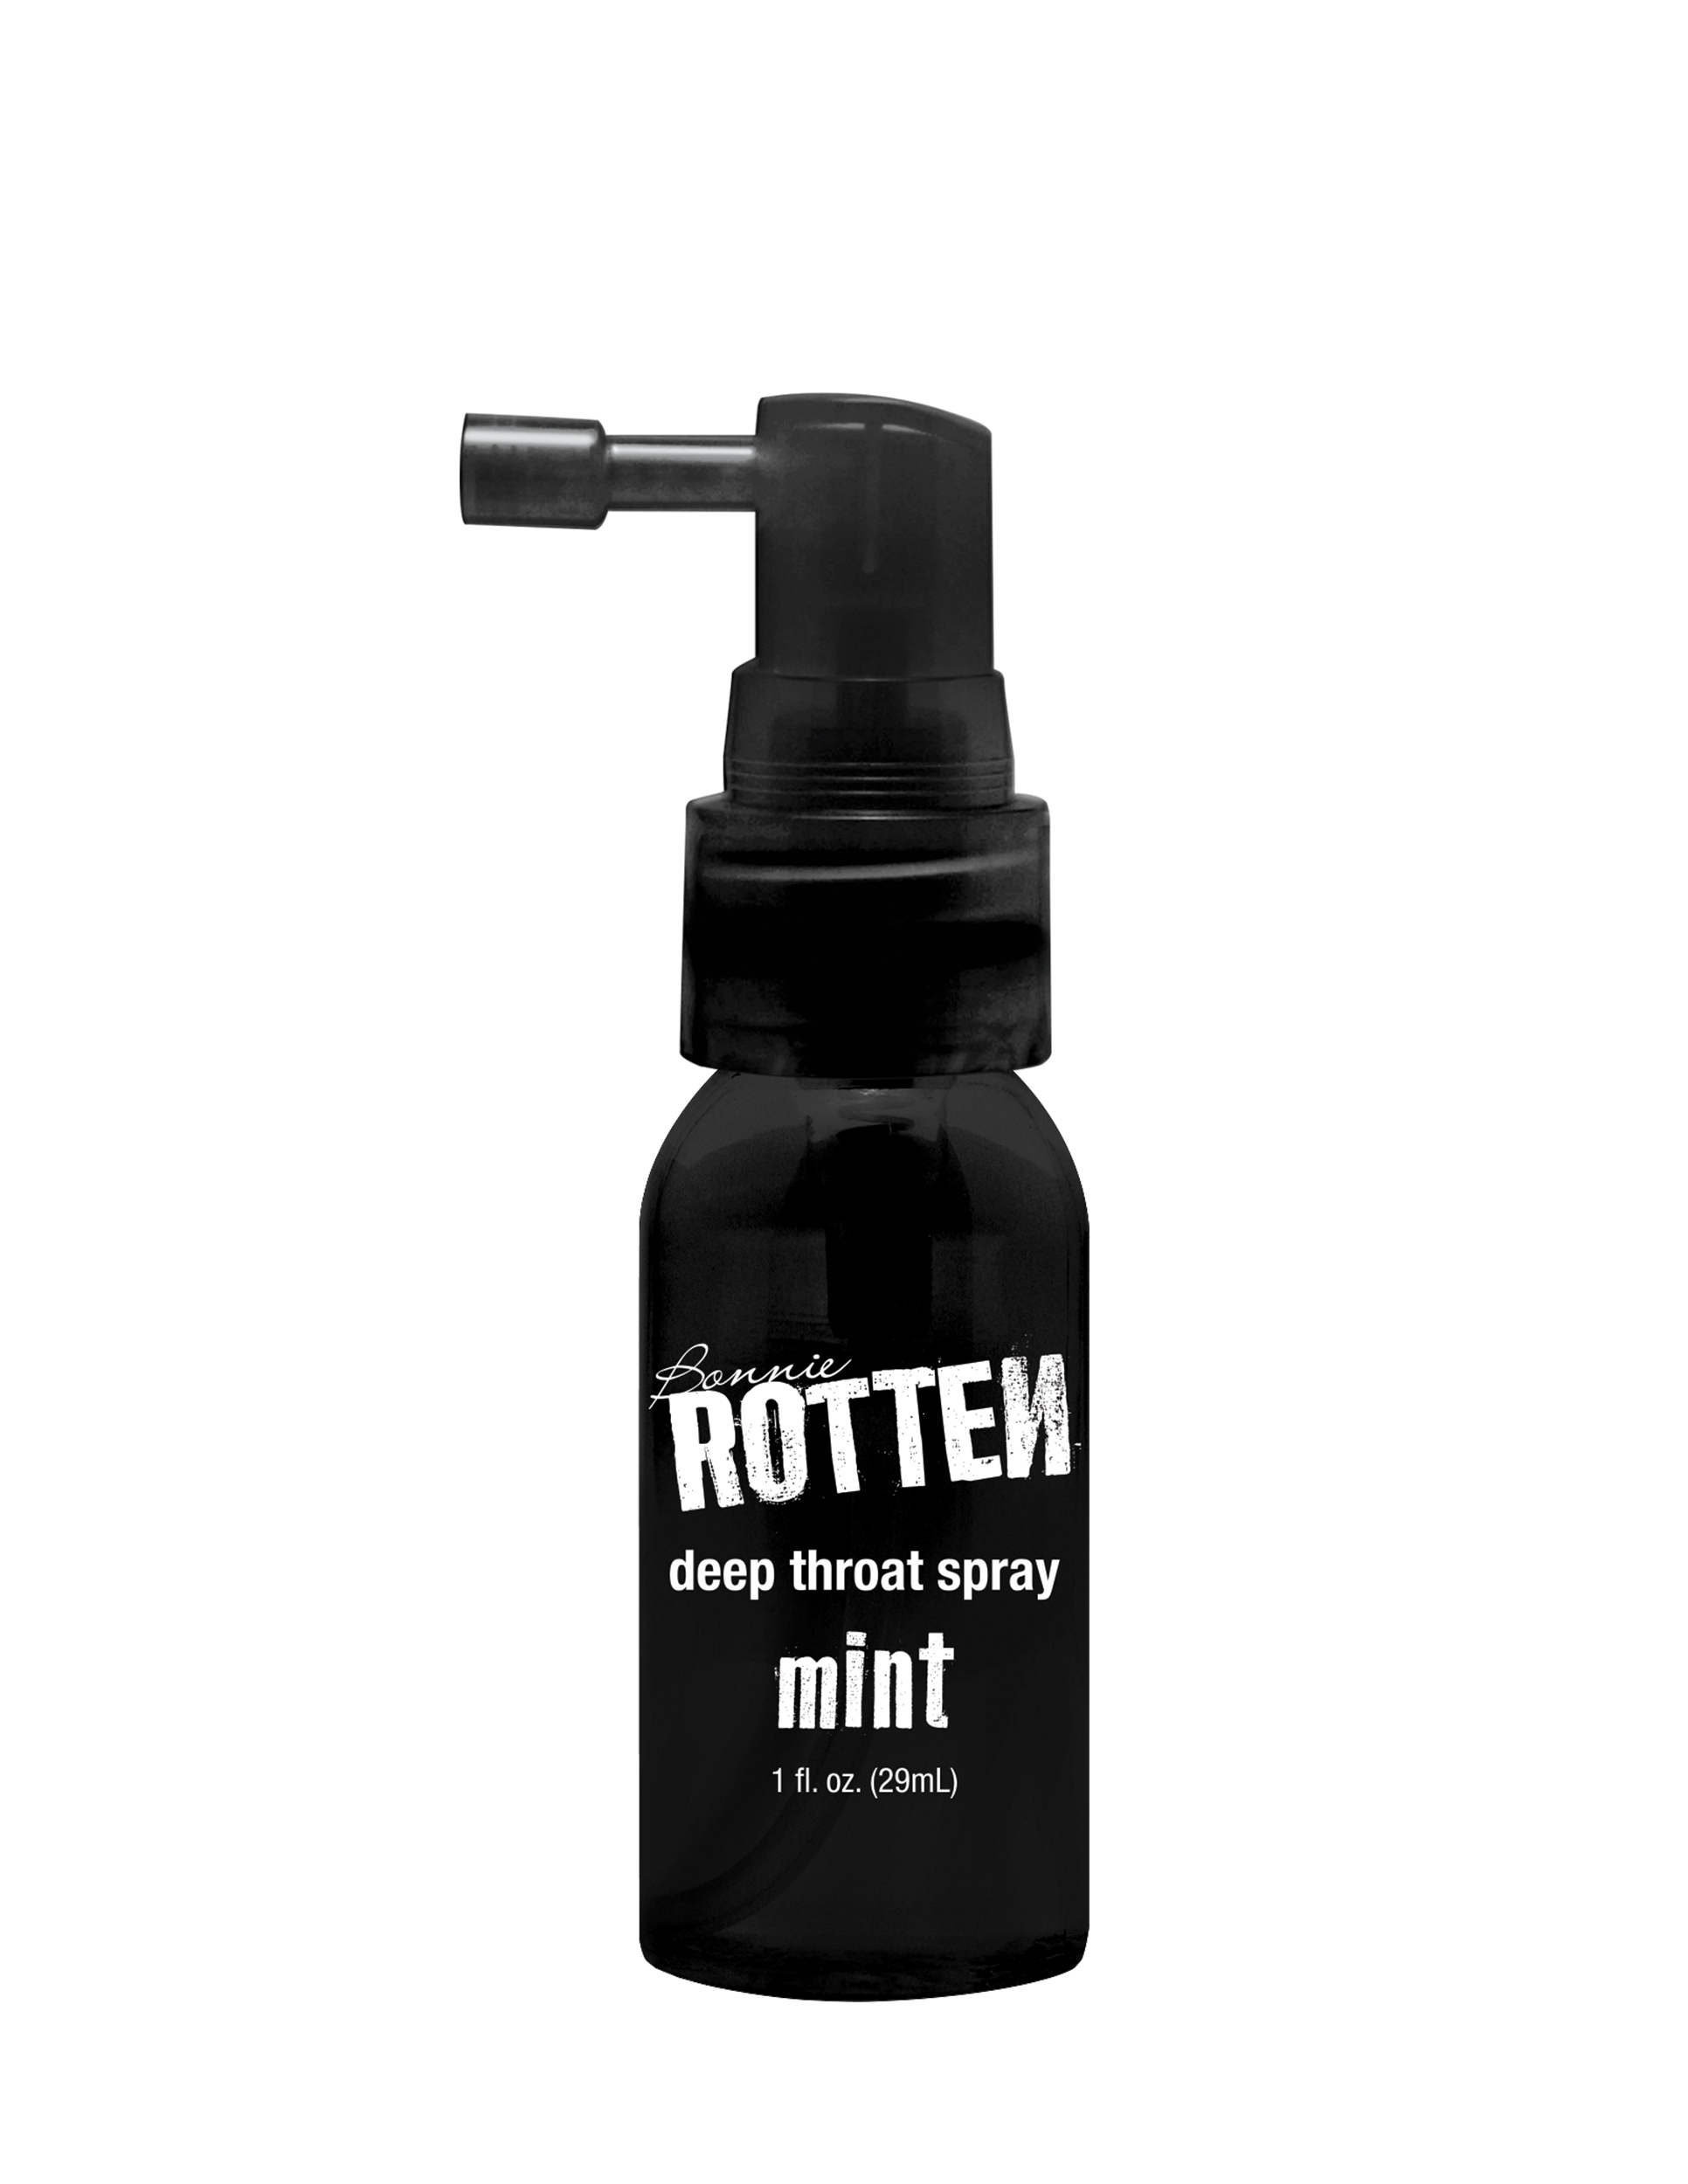 BONNIE ROTTENS DEEP THROAT SPRAY MINT